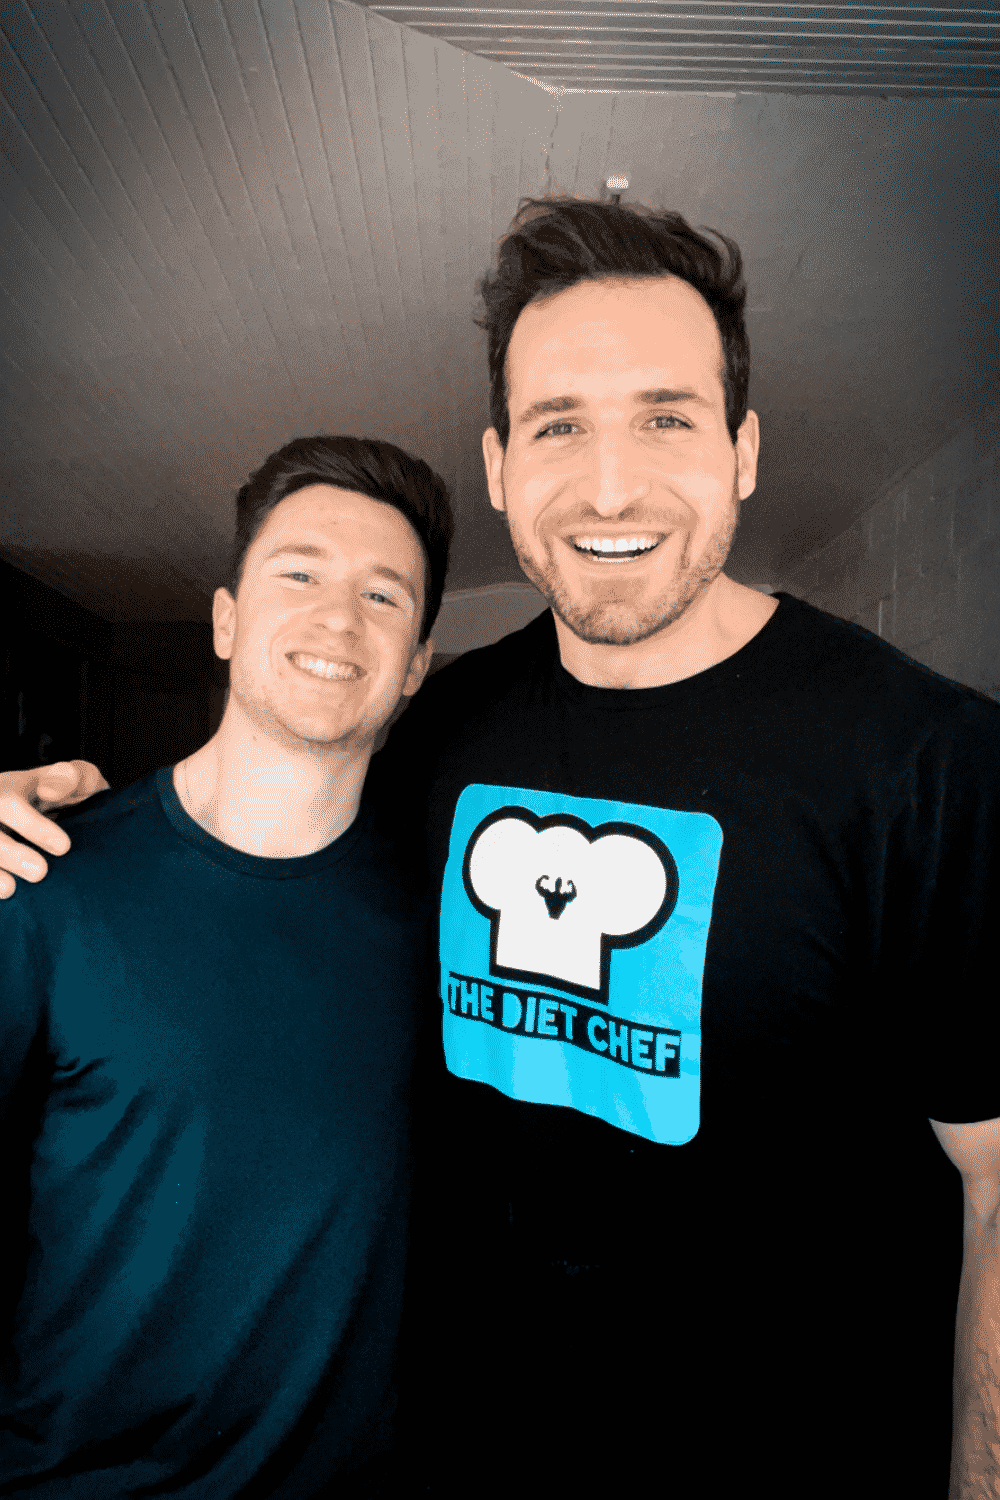 Two men in a kitchen smiling.